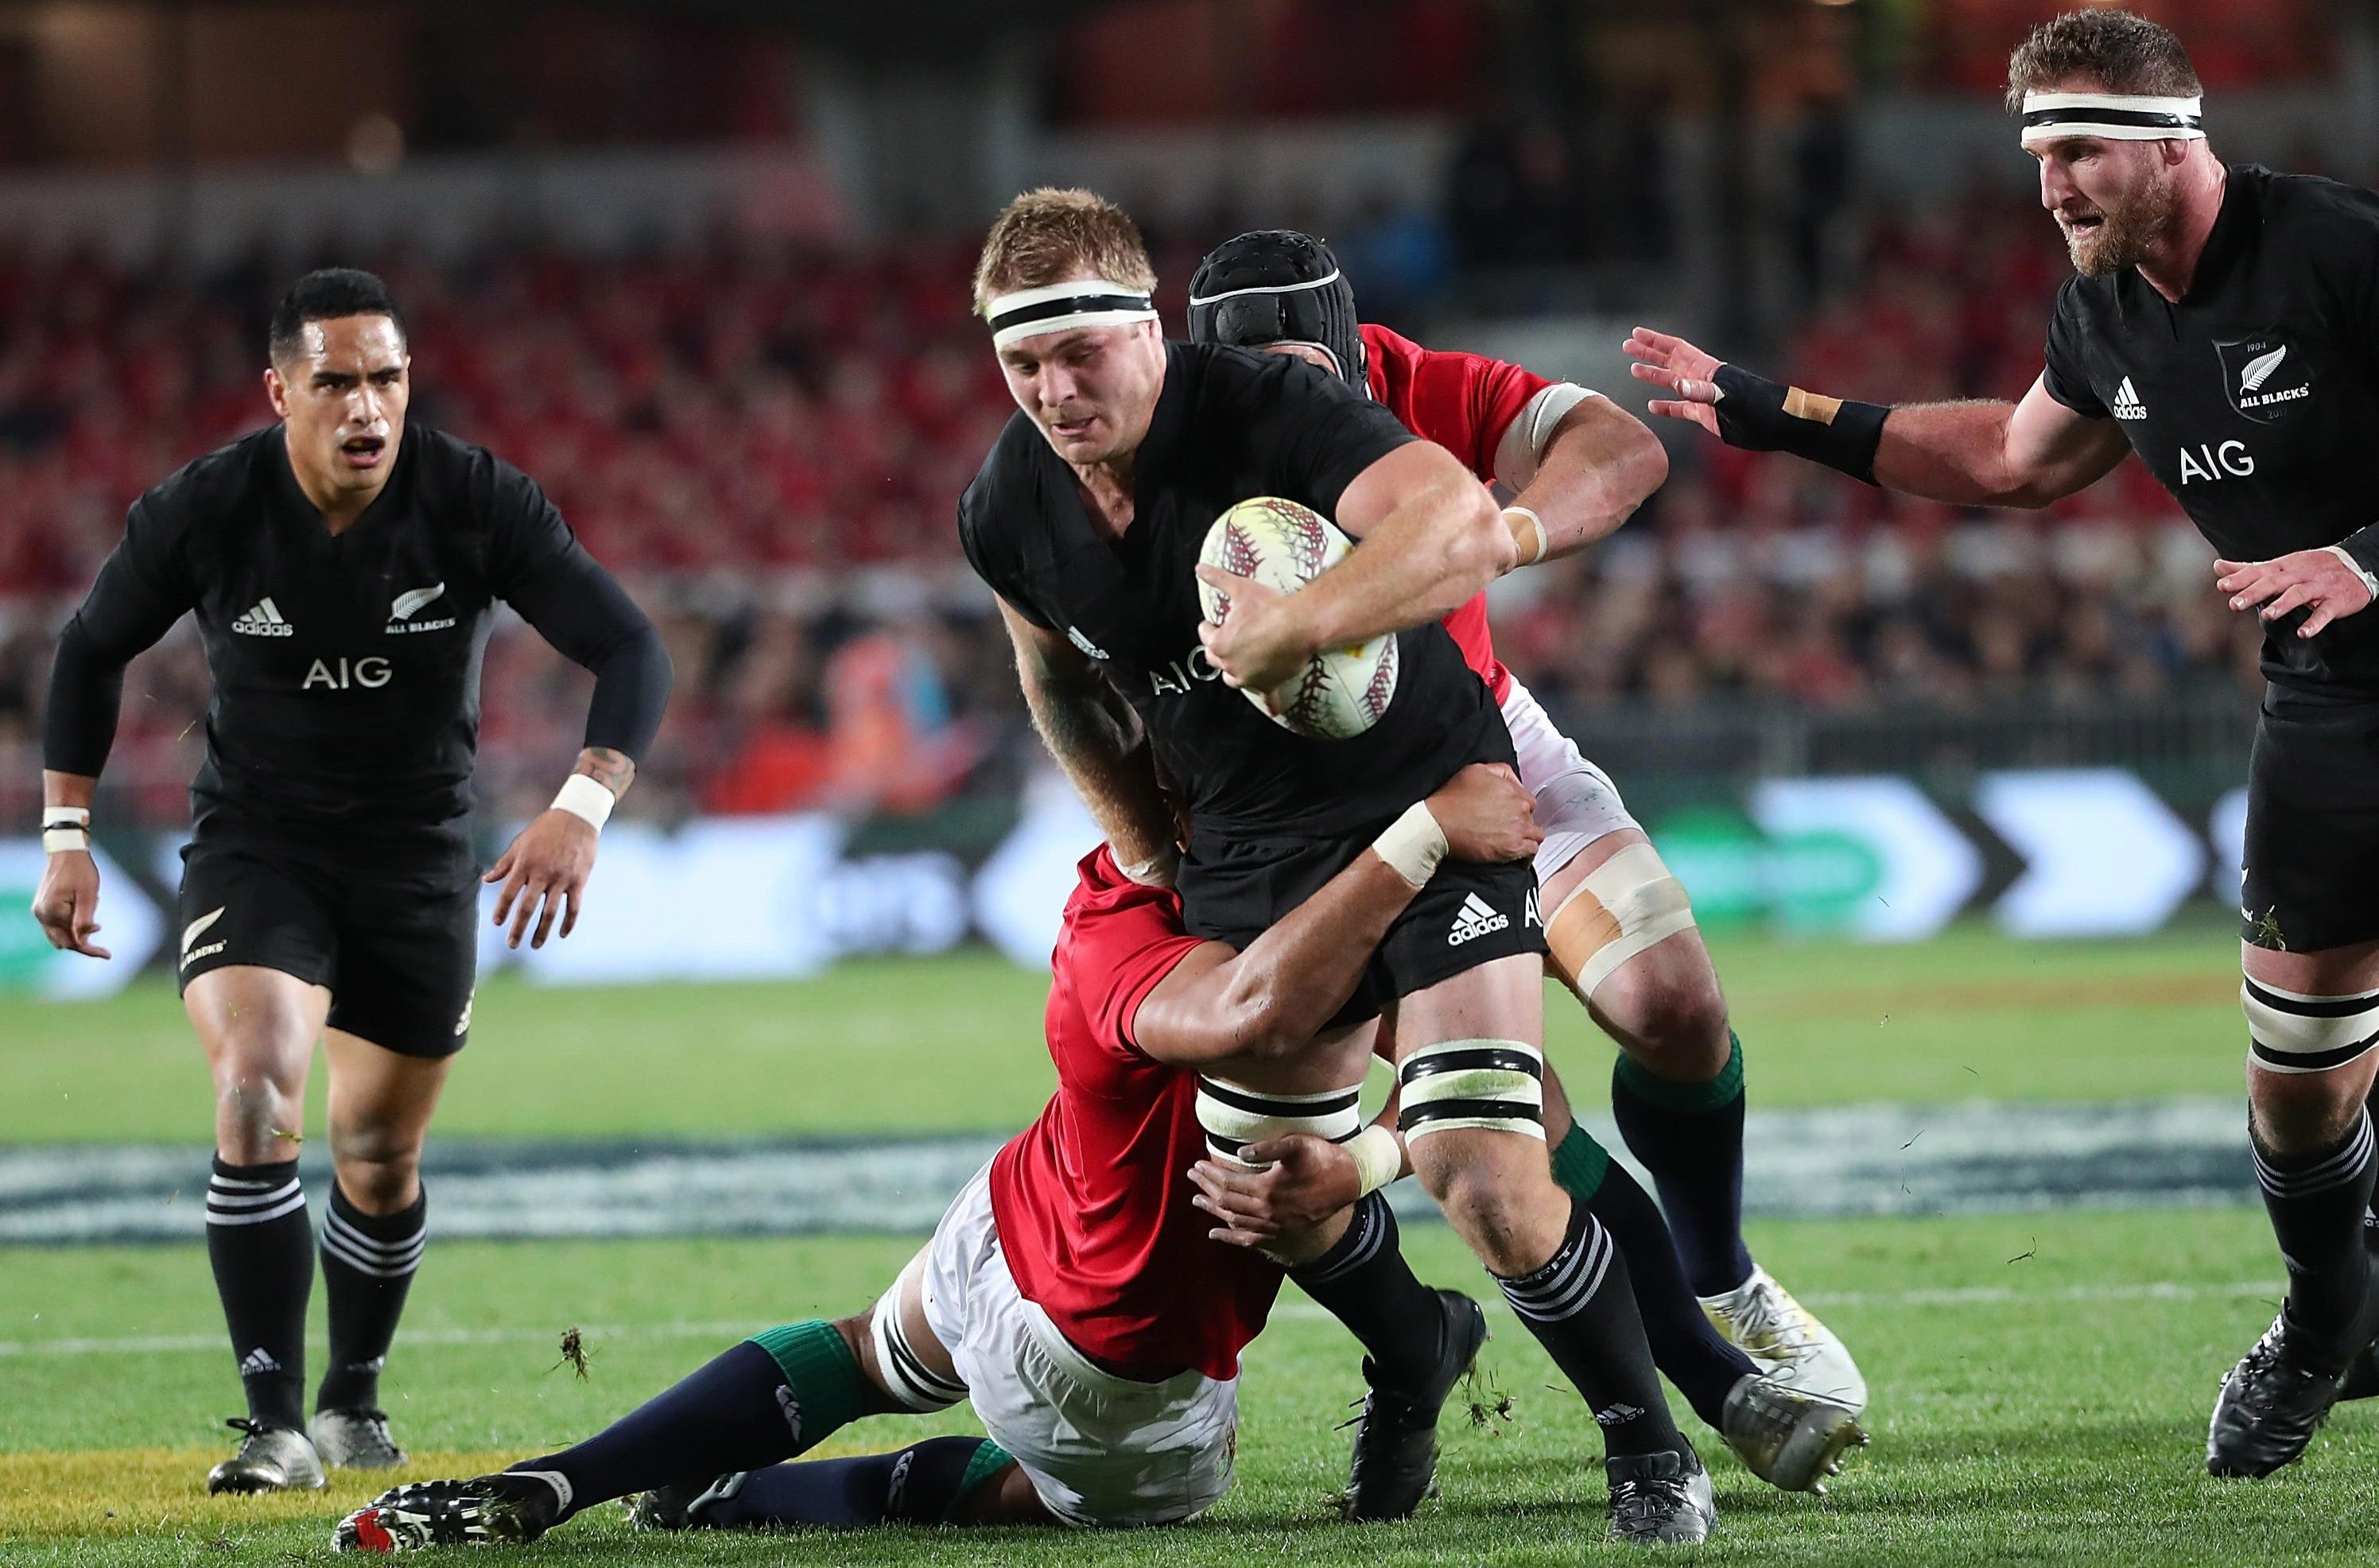 All Blacks flanker Sam Cane says the haka is 'part of who we are'